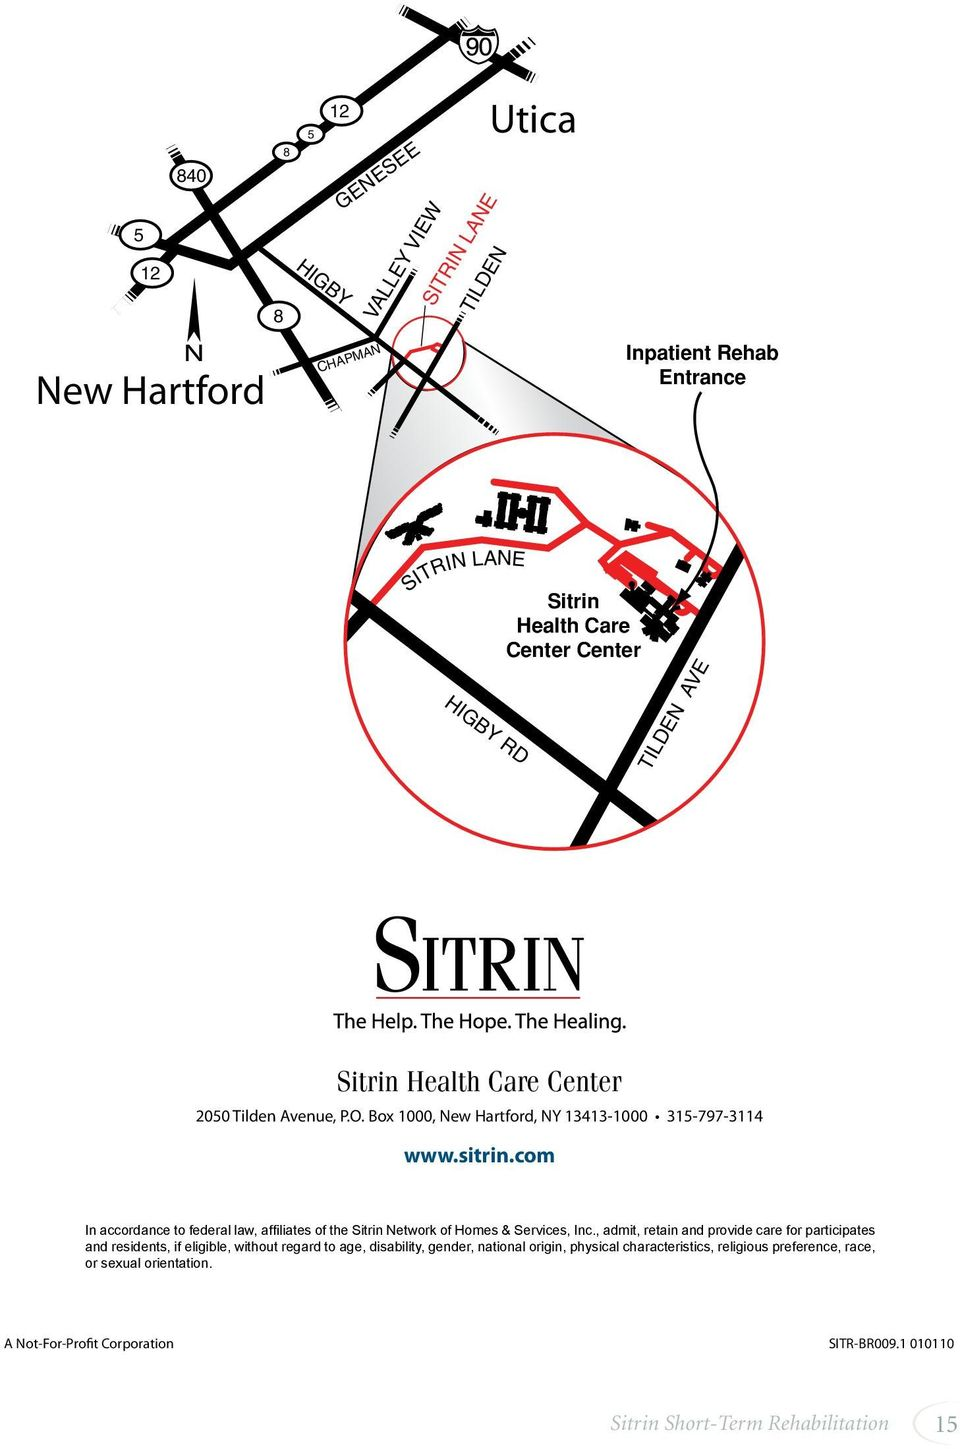 Sitrin Health Care Center 2050 Tilden Avenue, P.O.